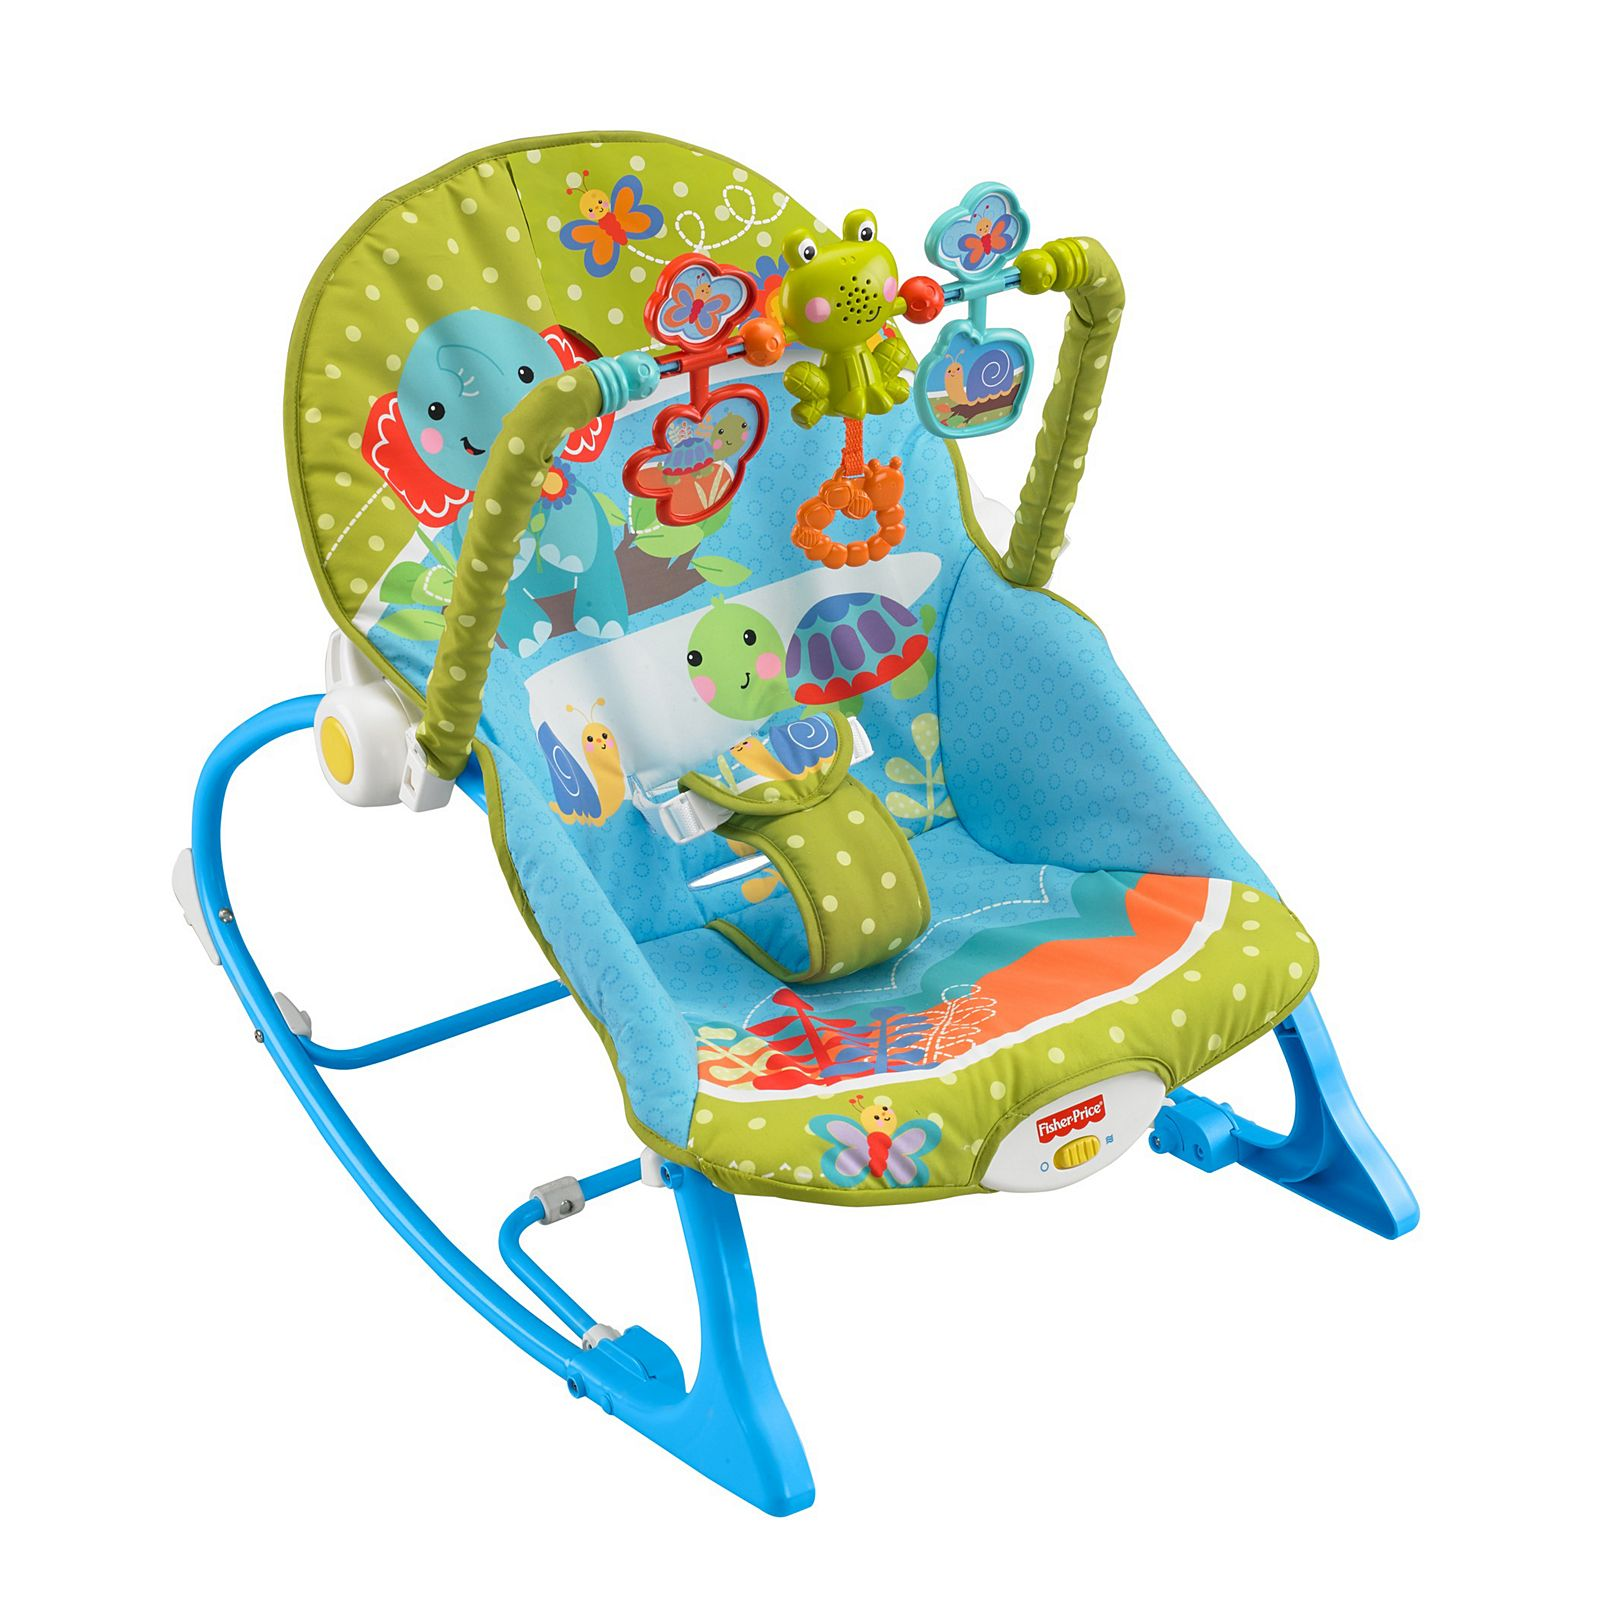 Hamaca de recreo Fisher Price